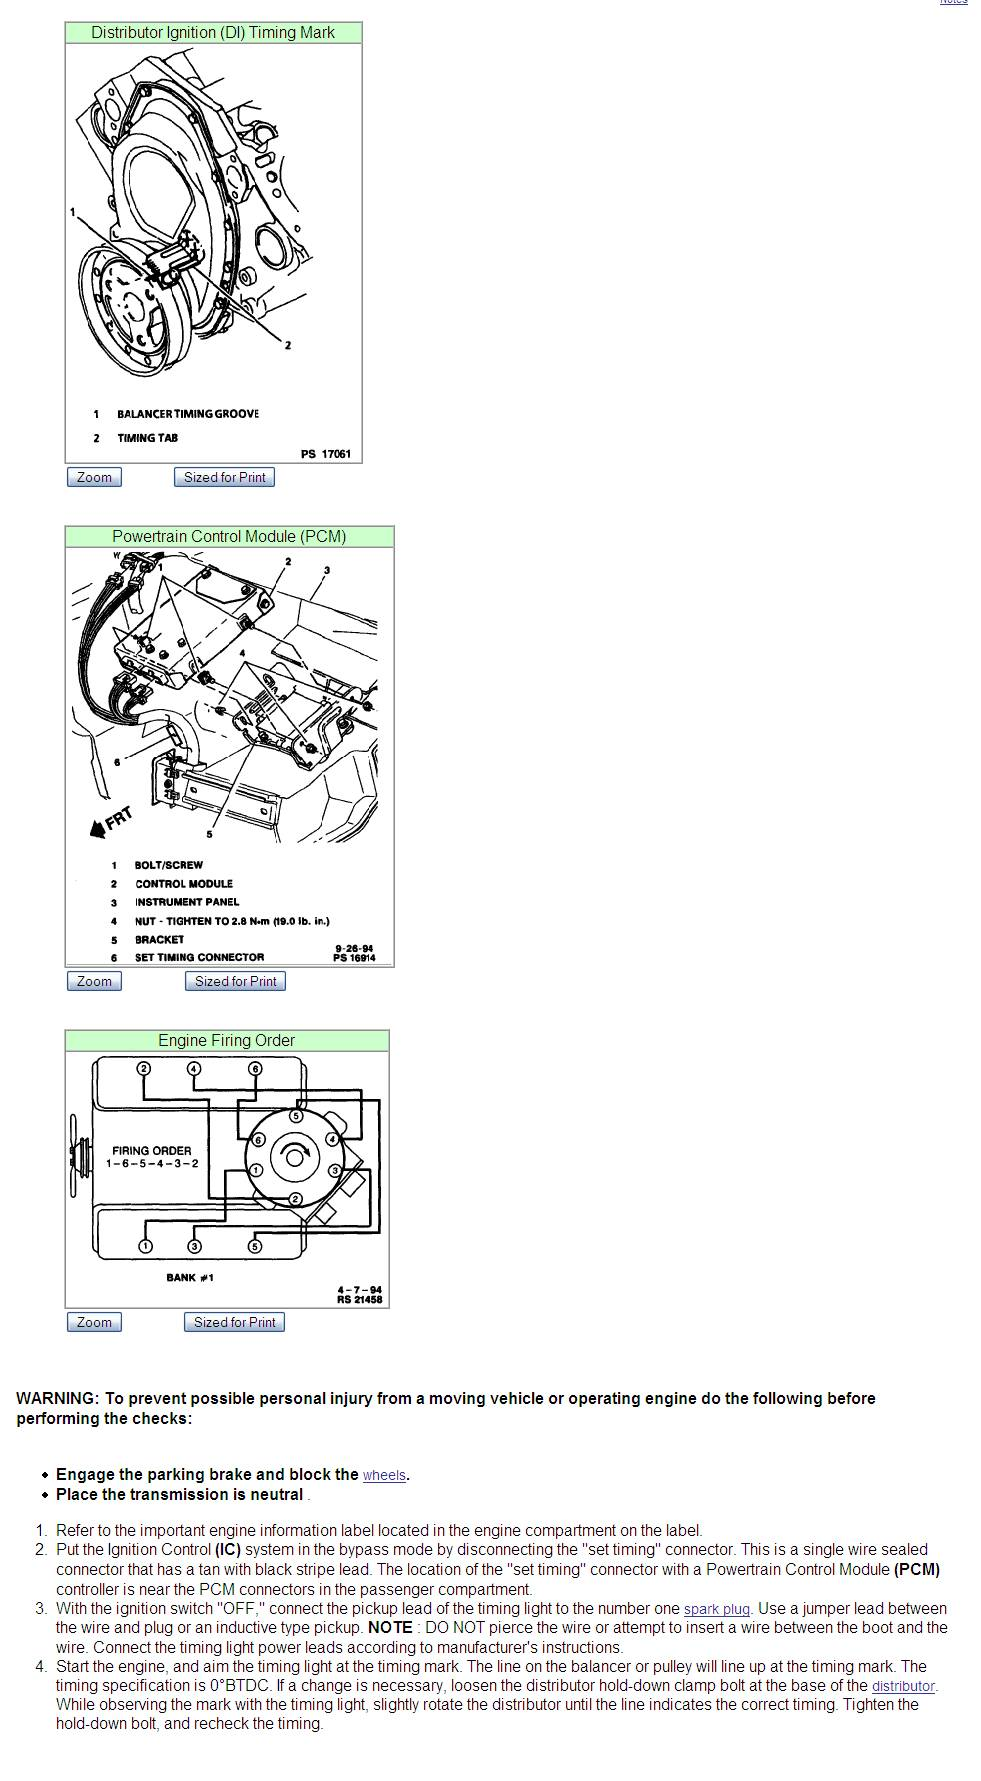 Timing Specifications for a 1991 GMC Chevy 4.3 V6 | eHow.com